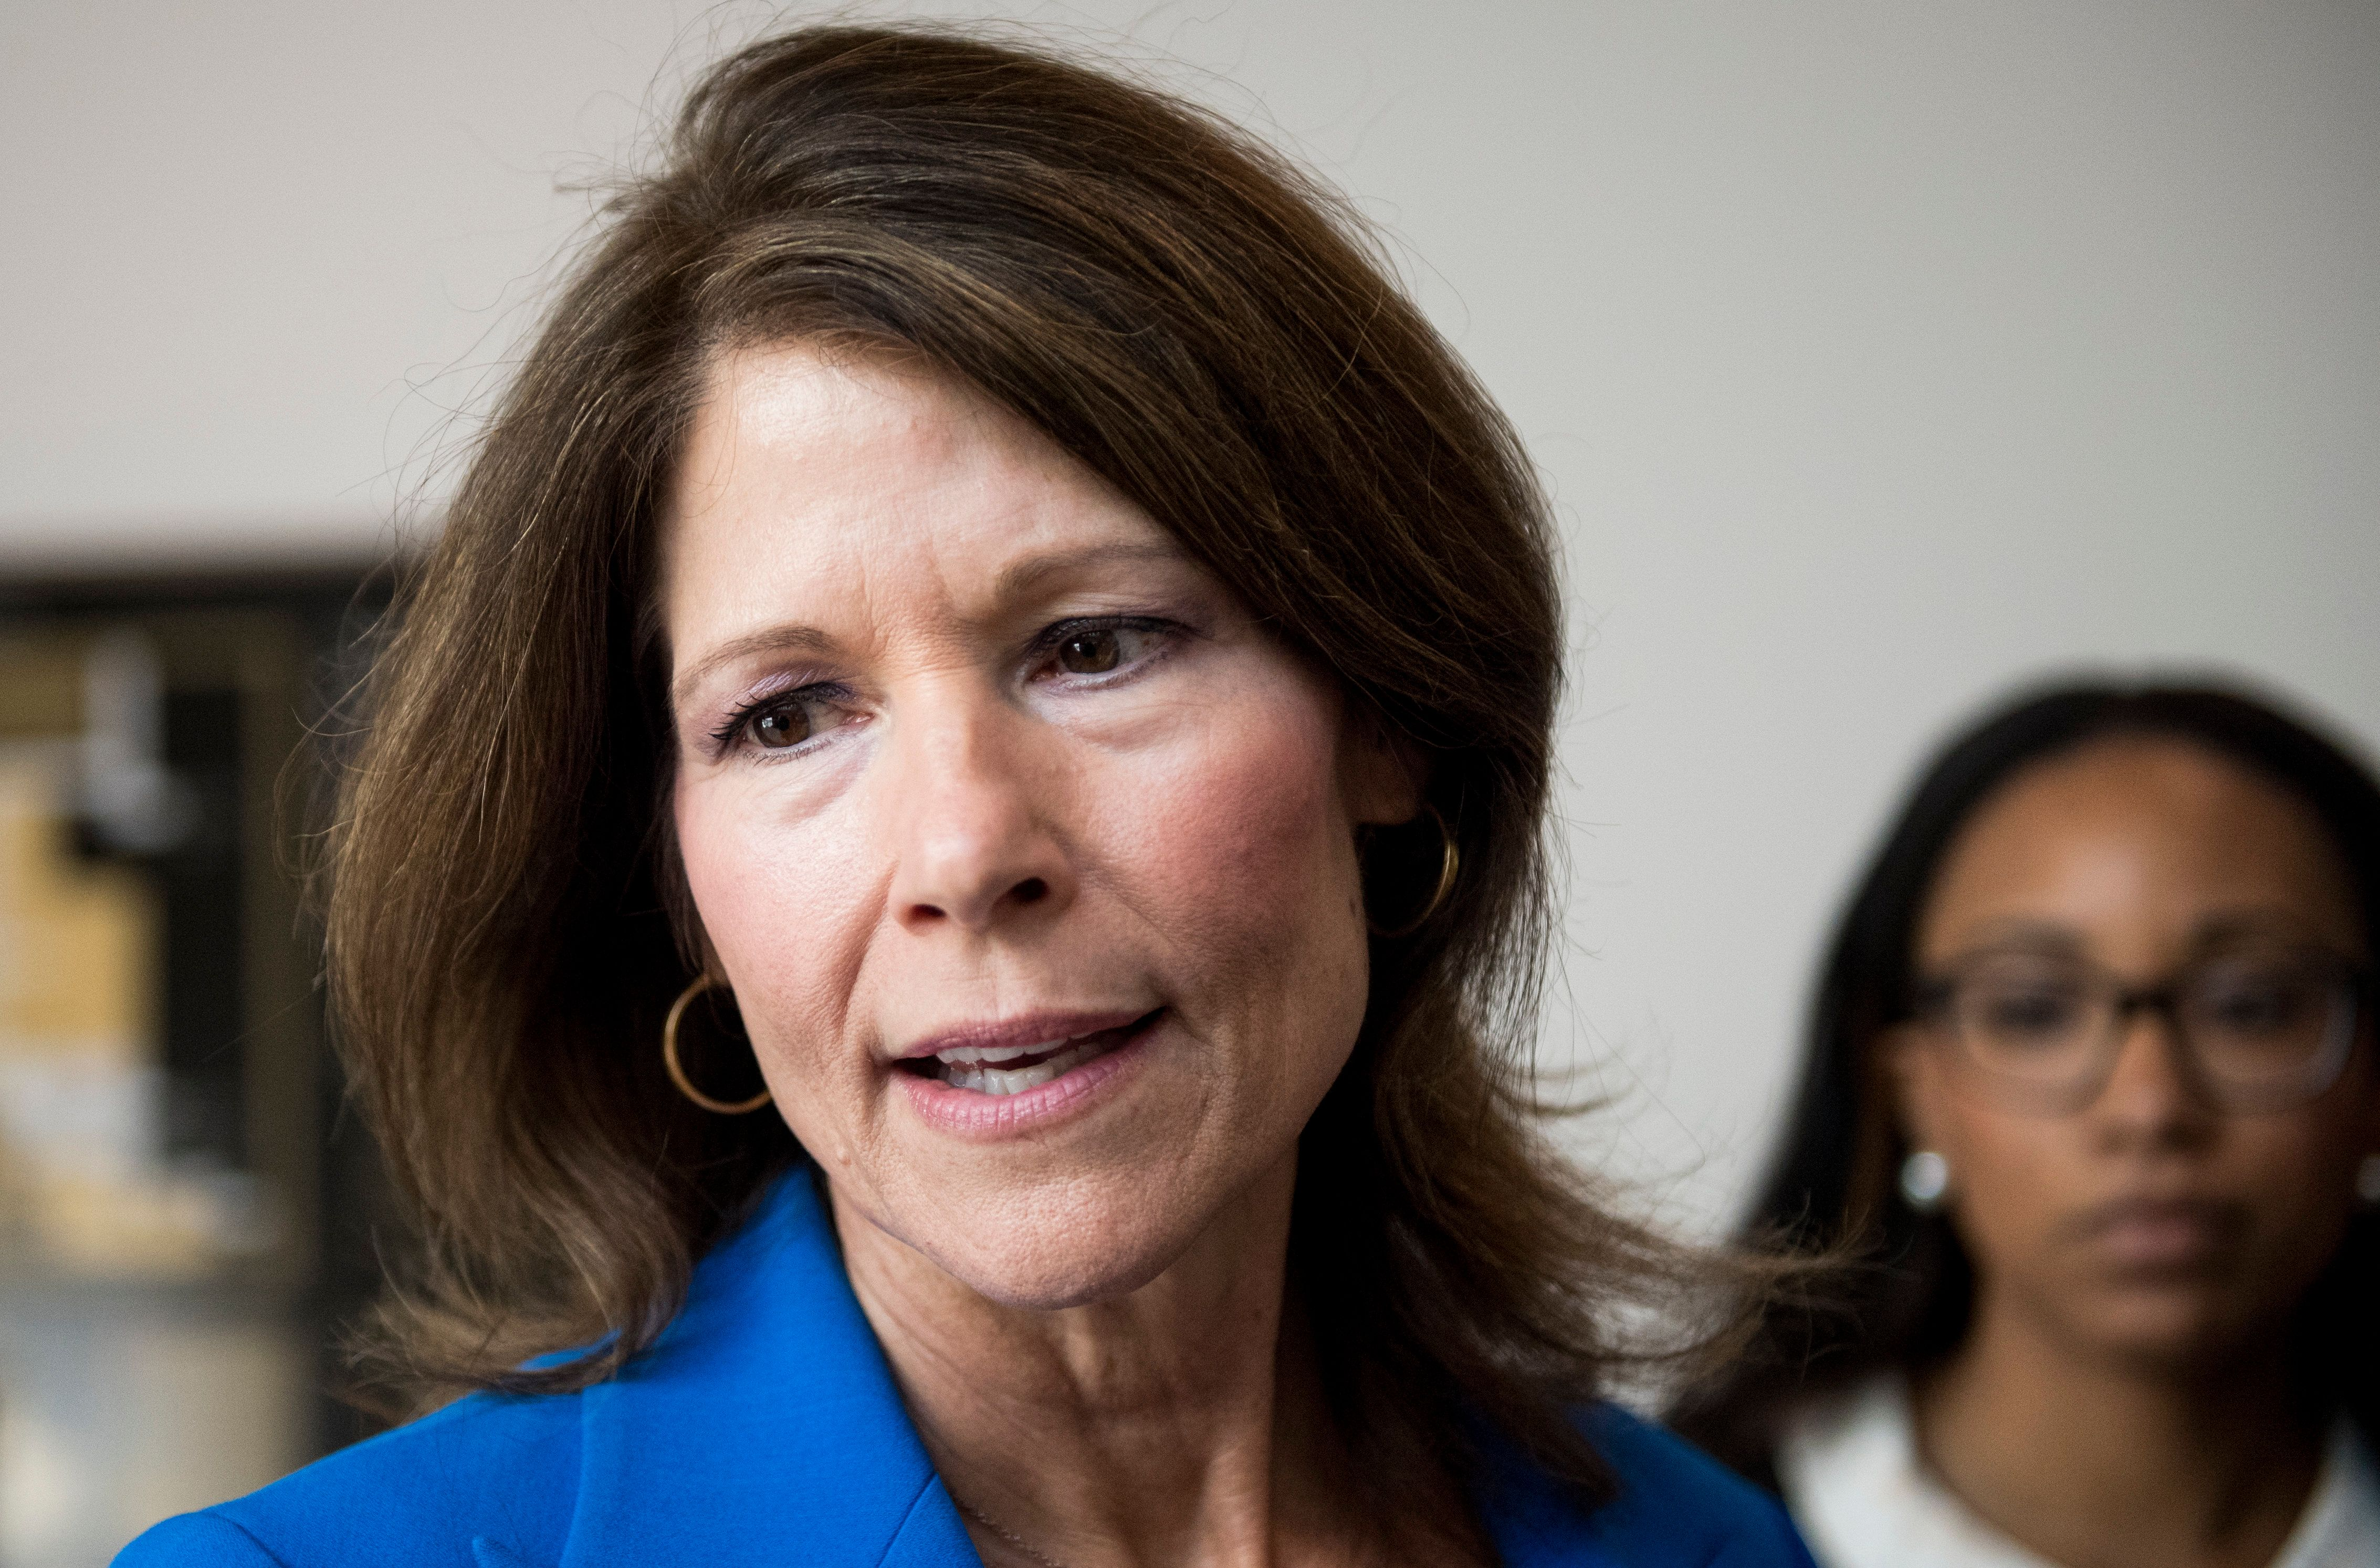 """Rep. Cheri Bustos told Fox News on Thursday, """"To your point of these allegations going back a bit, I've got two w"""